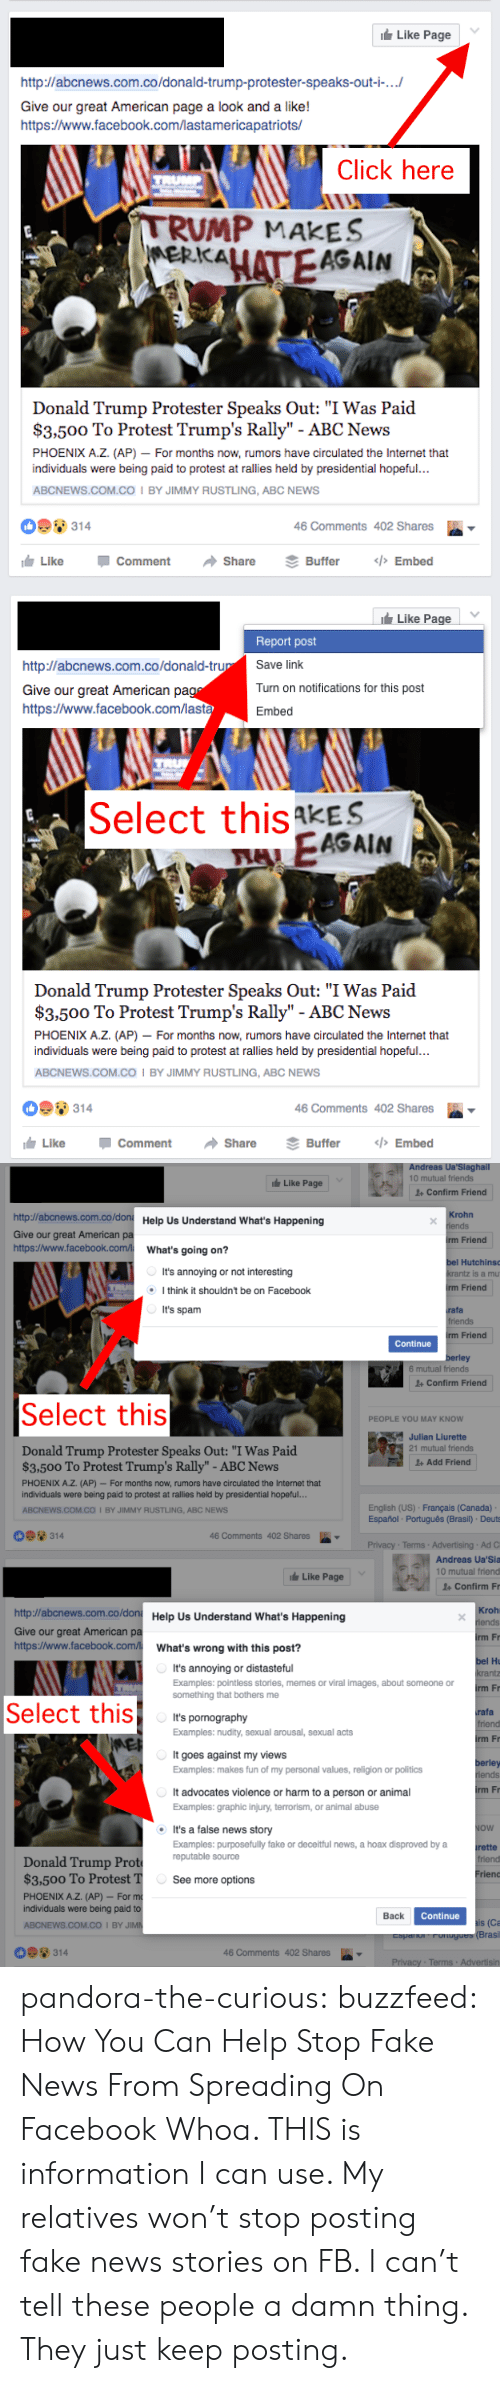 """Rustling: Like Page  http://abcnews.com.co/donald-trump-protester-speaks-out-i-...  Give our great American page a look and a like!  http:/www.facebook.com/lastamericapatriots/  Click here  TRUMP  TRUMP MAKES  MERKALATEAGAIN  Donald Trump Protester Speaks Out: """"I Was Paid  $3,500 To Protest Trump's Rally"""" - ABC News  PHOENIX A.Z. (AP) - For months now, rumors have circulated the Internet that  individuals were being paid to protest at rallies held by presidential hopeful..  ABCNEWS.COM.Co I BY JIMMY RUSTLING, ABC NEWS  314  46 Comments 402 Shares  Like  </>Embed  Comment  Share  Buffer   Like Page  Report post  Save link  http://abcnews.com.co/donald-trup  Turn on notifications for this post  Give our great American pag  https:/www.facebook.com/lasta  Embed  Select this kES  FAEAGAIN  Donald Trump Protester Speaks Out: """"I Was Paid  $3,500 To Protest Trump's Rally"""" - ABC News  PHOENIX A.Z. (AP) For months now, rumors have circulated the Internet that  individuals were being paid to protest at rallies held by presidential hopeful...  ABCNEWS.COM.CO I BY JIMMY RUSTLING, ABC NEWS  314  46 Comments 402 Shares  <>Embed  Like  Comment  Share  Buffer   Andreas Ua'Siaghall  10 mutual friends  Like Page  1Confirm Friend  http://abcnews.com.co/don Help Us Understand What's Happening  Krohn  iends  Give our great American pa  http://www.facebook.com/  irm Friend  What's going on?  bel Hutchins  It's annoying or not interesting  krantz is a mu  rm Friend  Ithink it shouldn't be on Facebook  It's spam  rafa  friends  rm Friend  Continue  berley  6 mutual friends  Confirm Friend  Select this  PEOPLE YOU MAY KNOW  Julian Liurette  21 mutual friends  Donald Trump Protester Speaks Out: """"I Was Paid  $3.500 To Protest Trump's Rally"""" - ABC News  Add Friend  PHOENIX A.Z. (AP)- For months now, rumors have circulated the Internet that  individuals were being paid to protest at rallies held by presidential hopeful...  English (US) Français (Canada)  Español Português (Brasil) Deuts  ABCNEWS"""